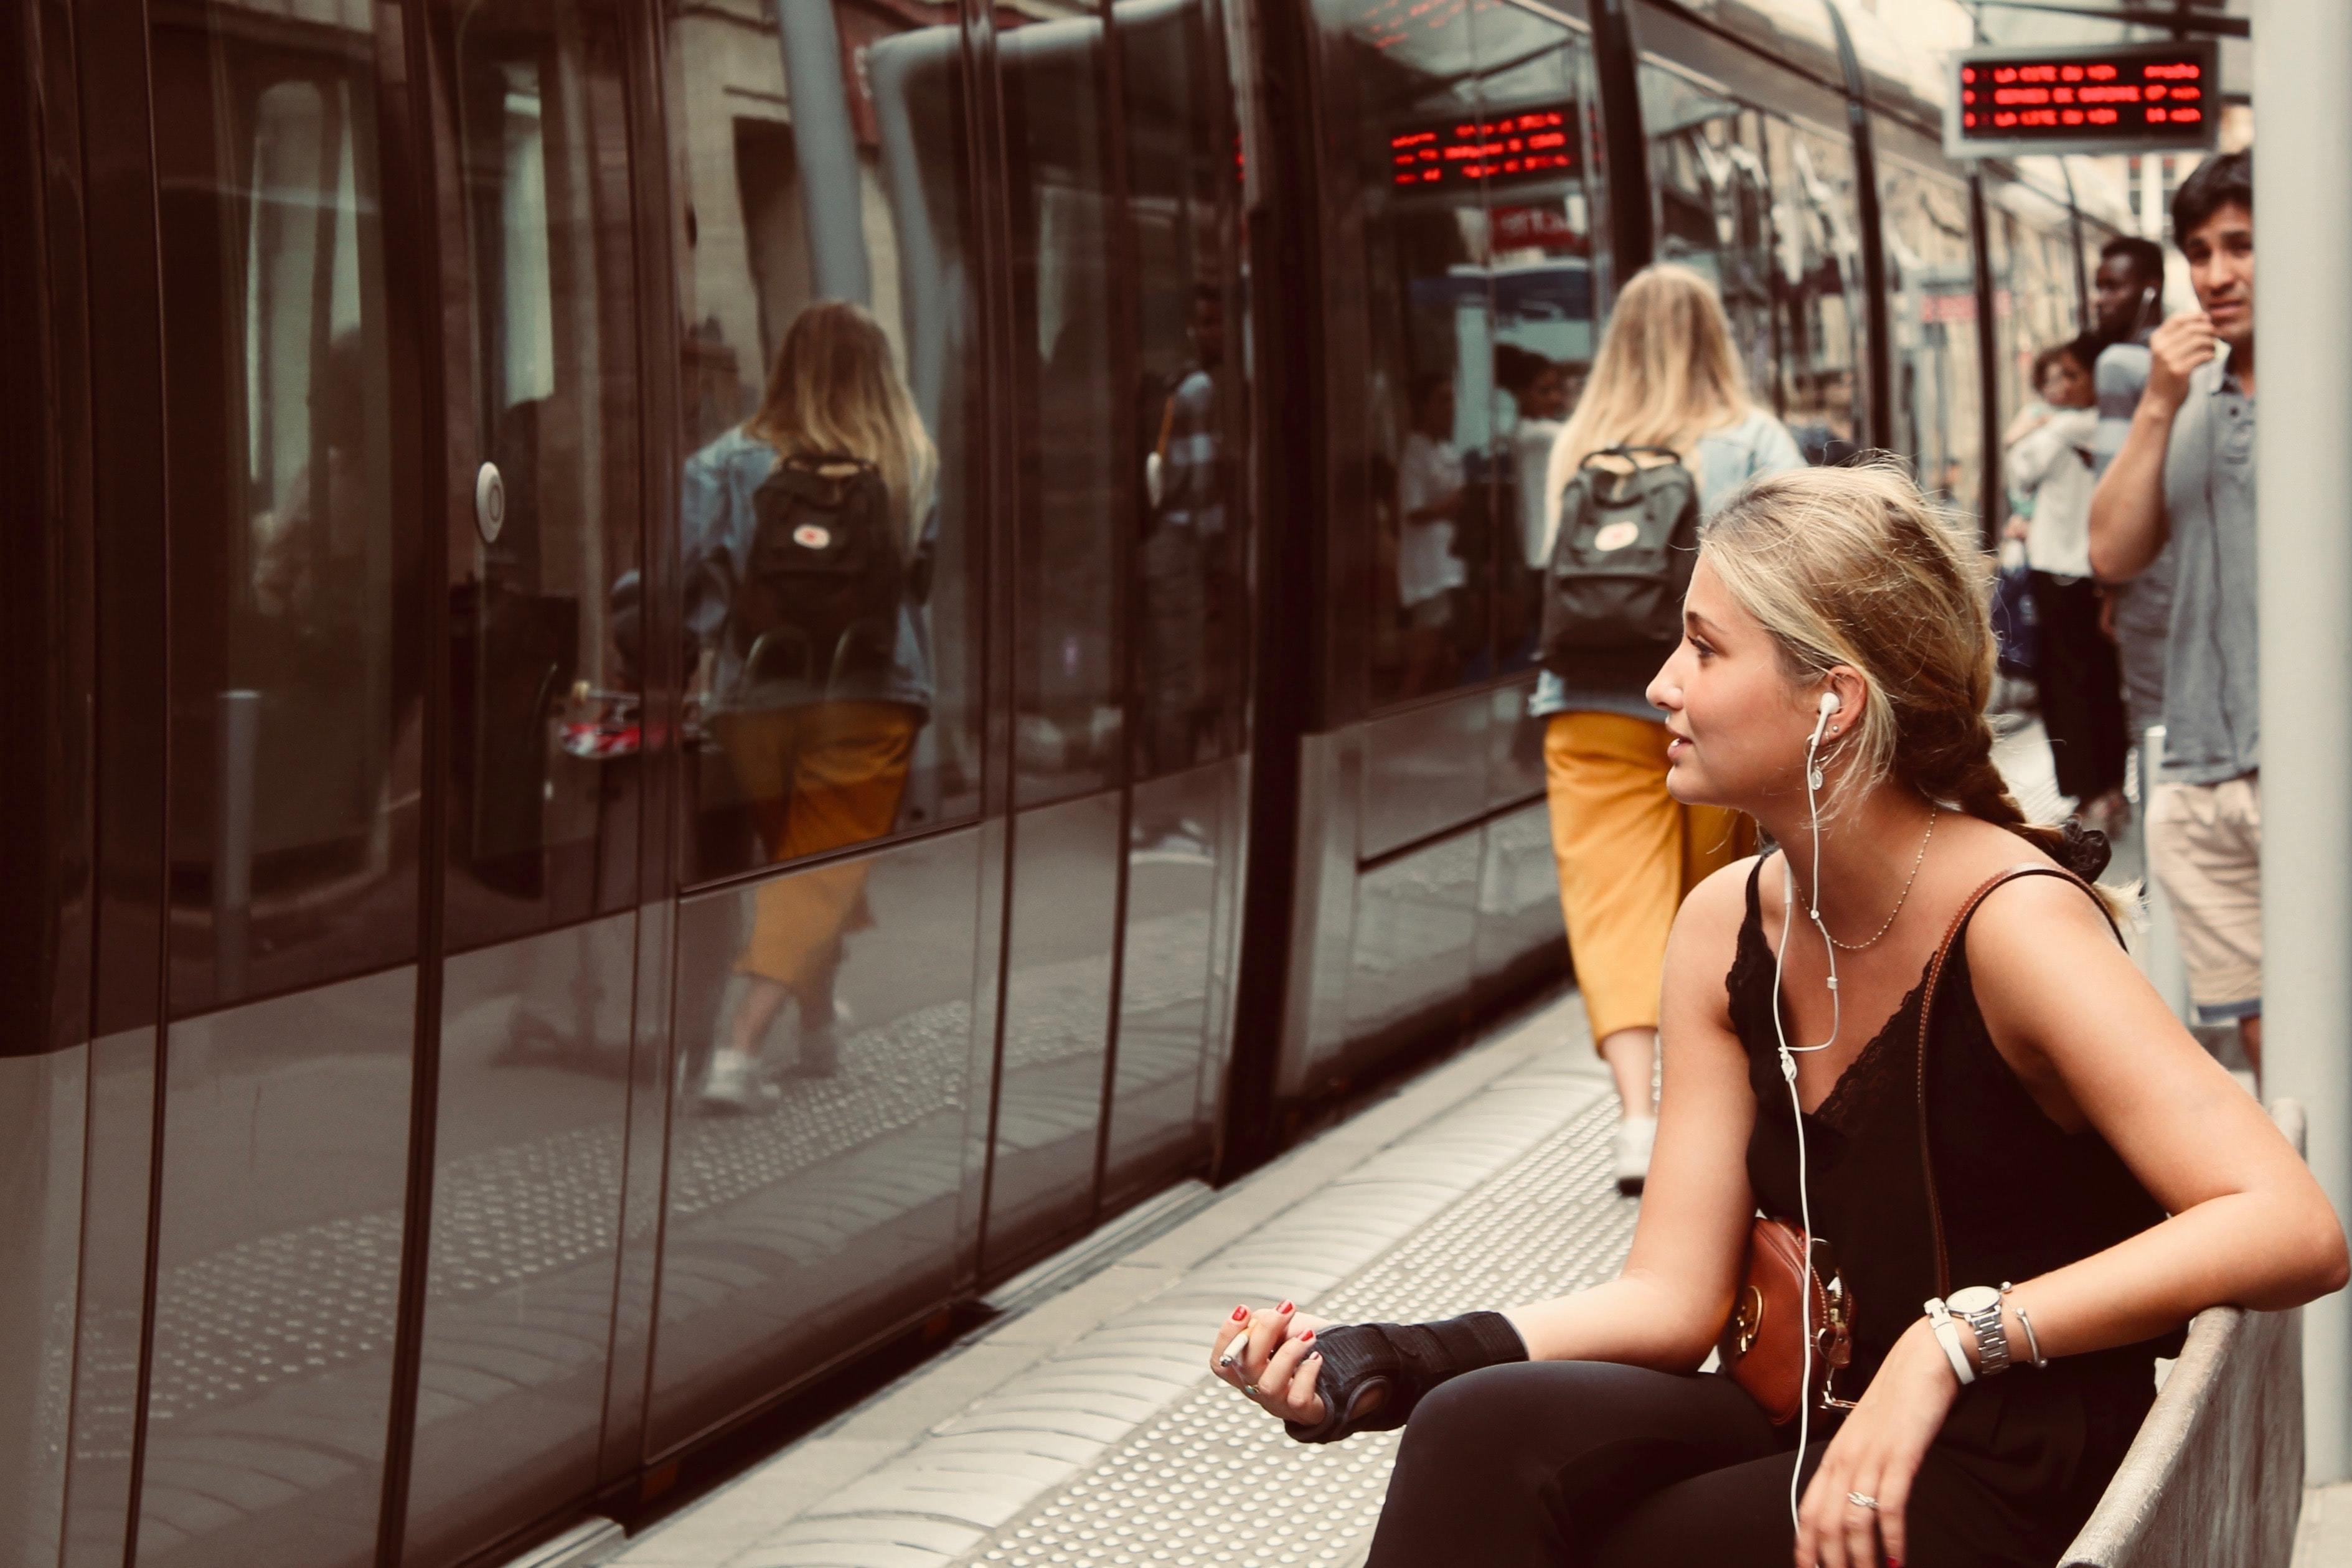 a young woman waits to get on the train